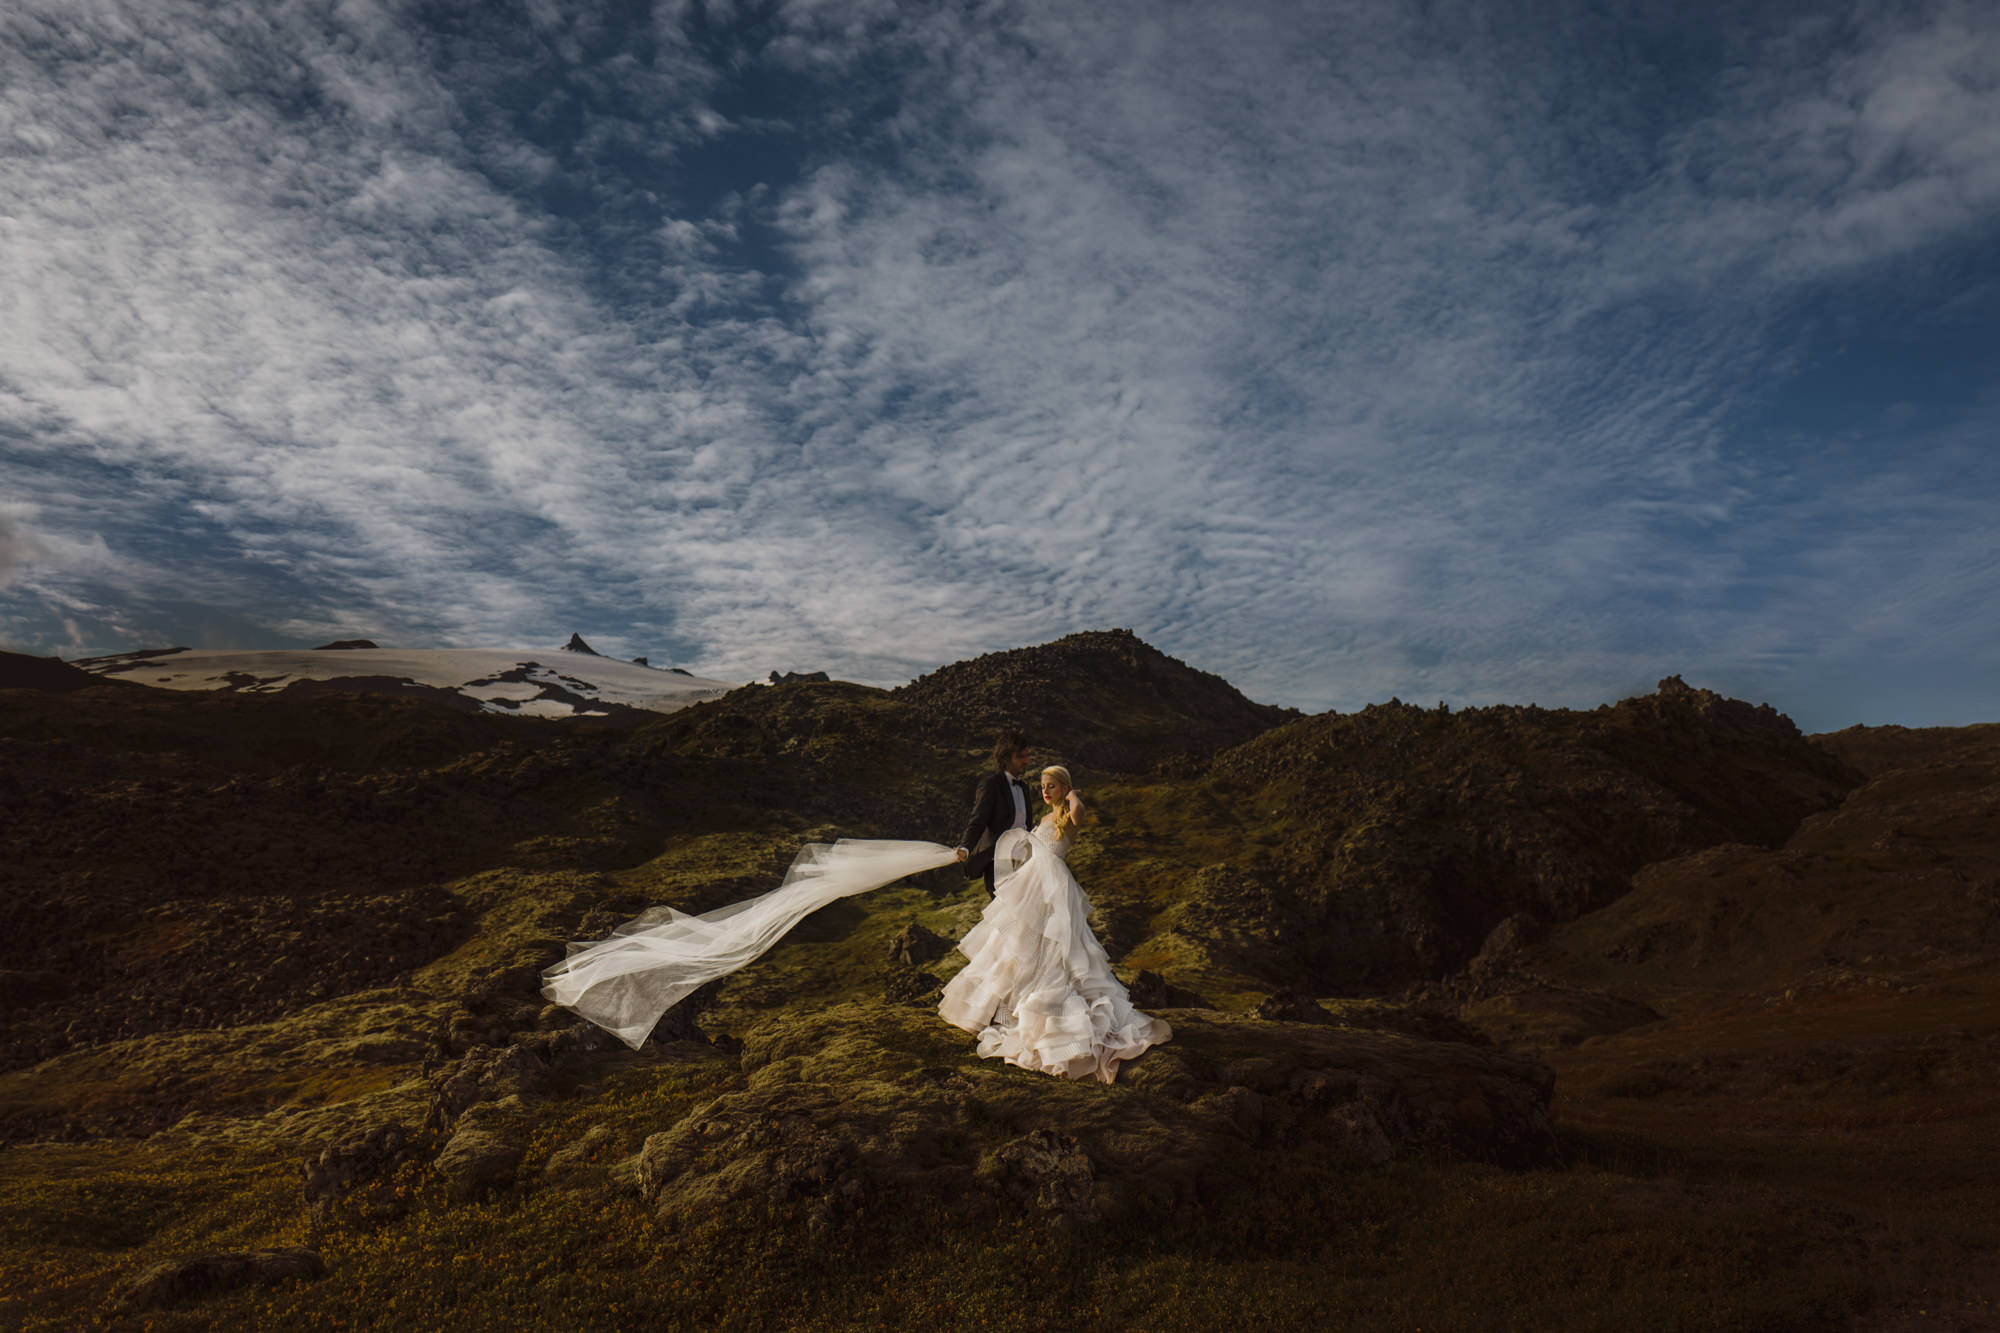 Groom holds veil for bride in mountain landscape - photo by McClintock Photography Agency